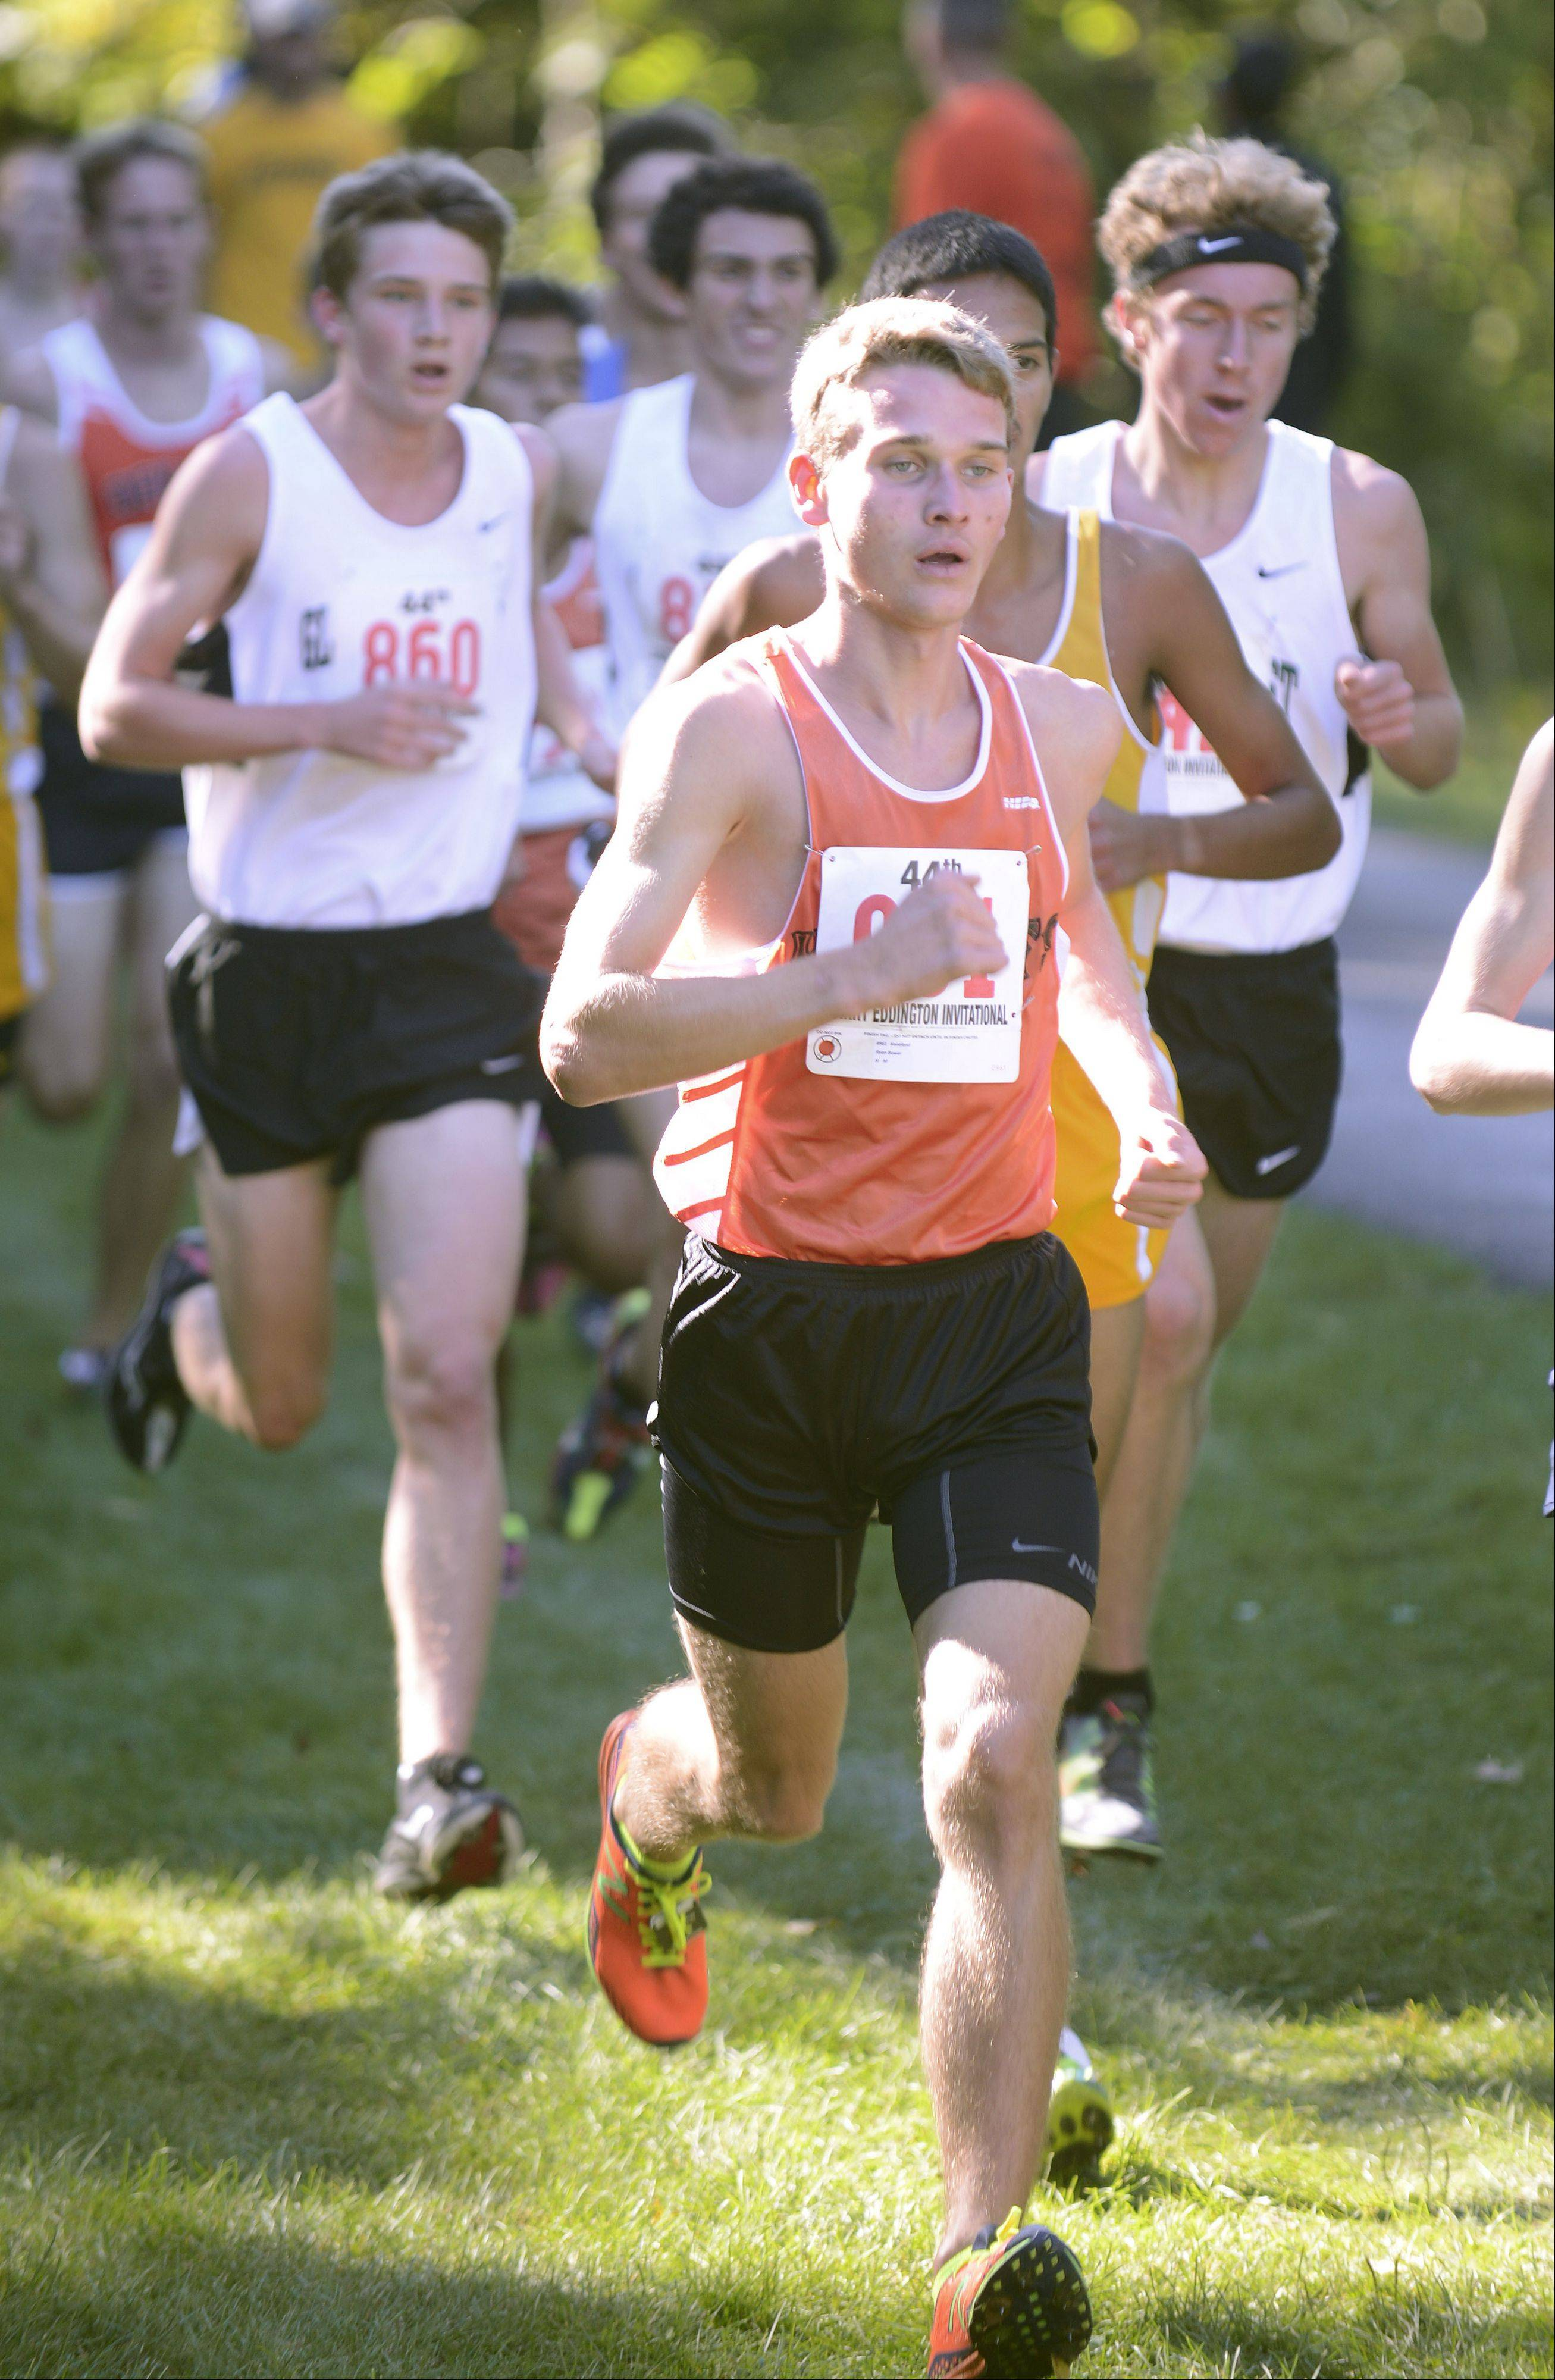 Kaneland's Ryan Bower runs the Elburn Woods course Saturday at the Eddington Invitational.